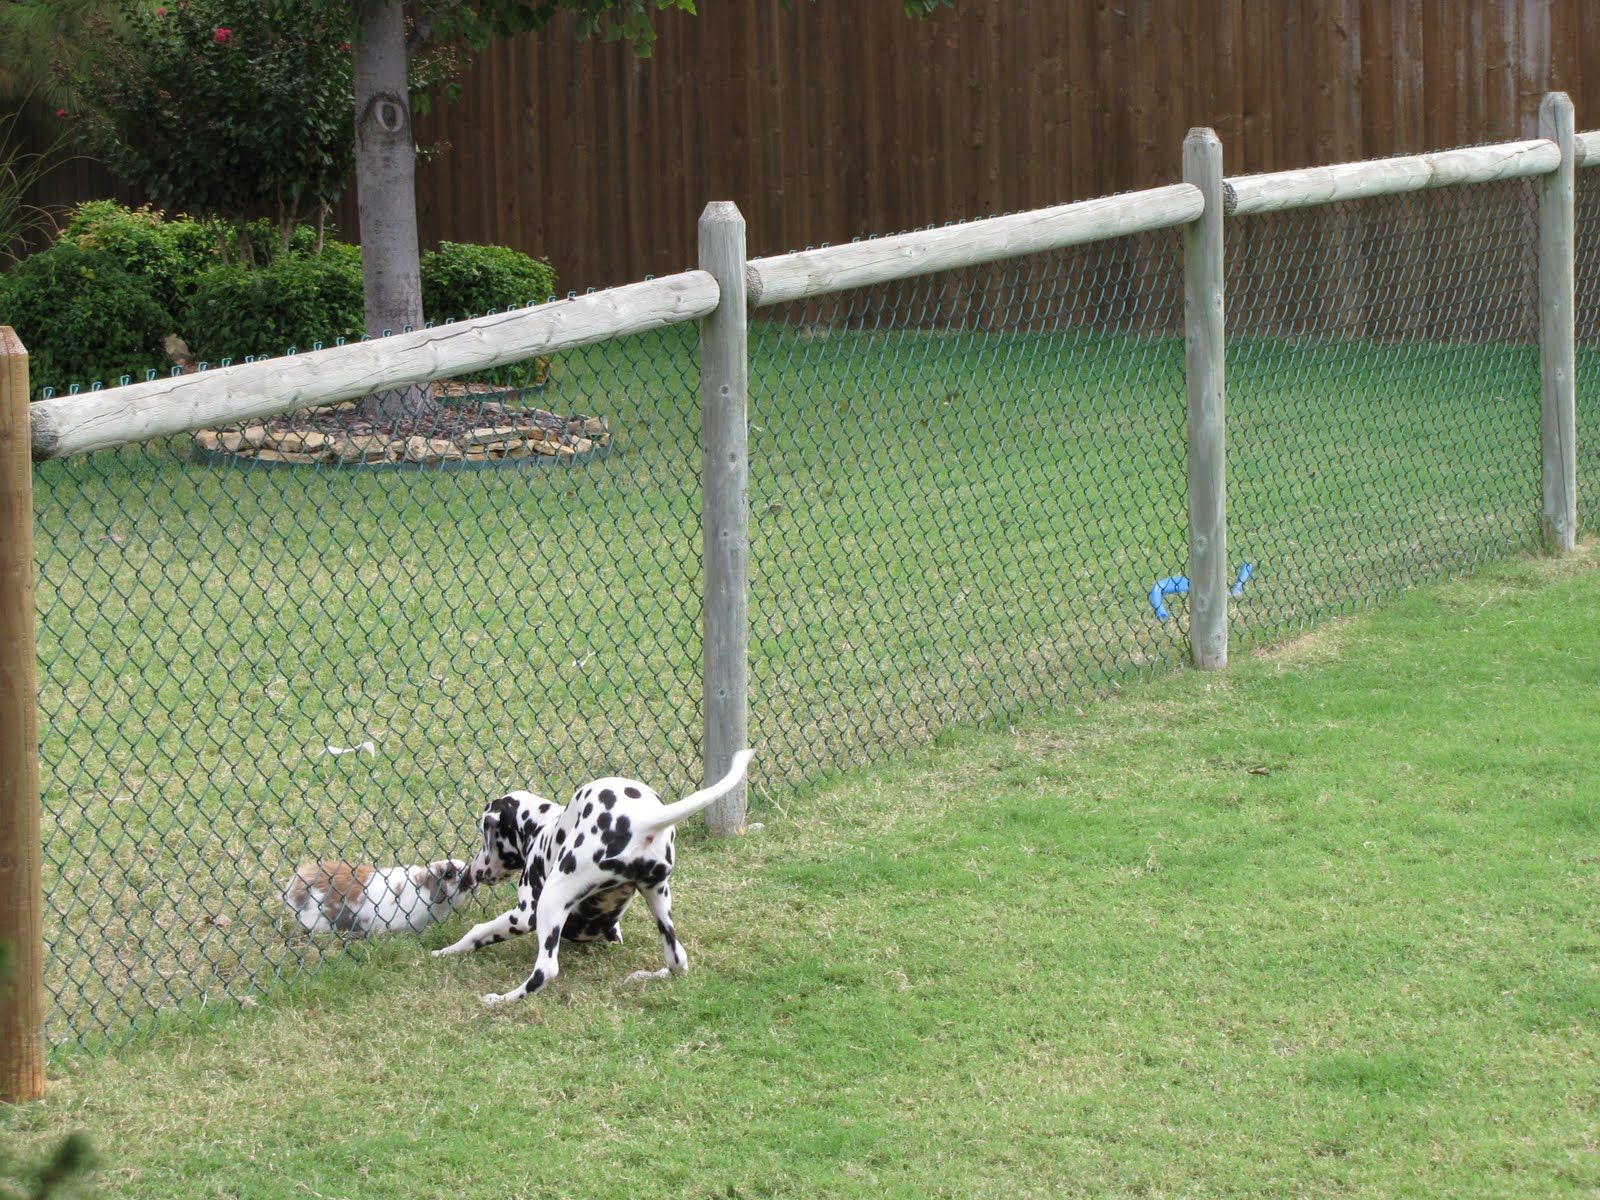 Cheapdogfenceideas Free Issues Of Family Circle Magazine in Backyard Fence For Dogs